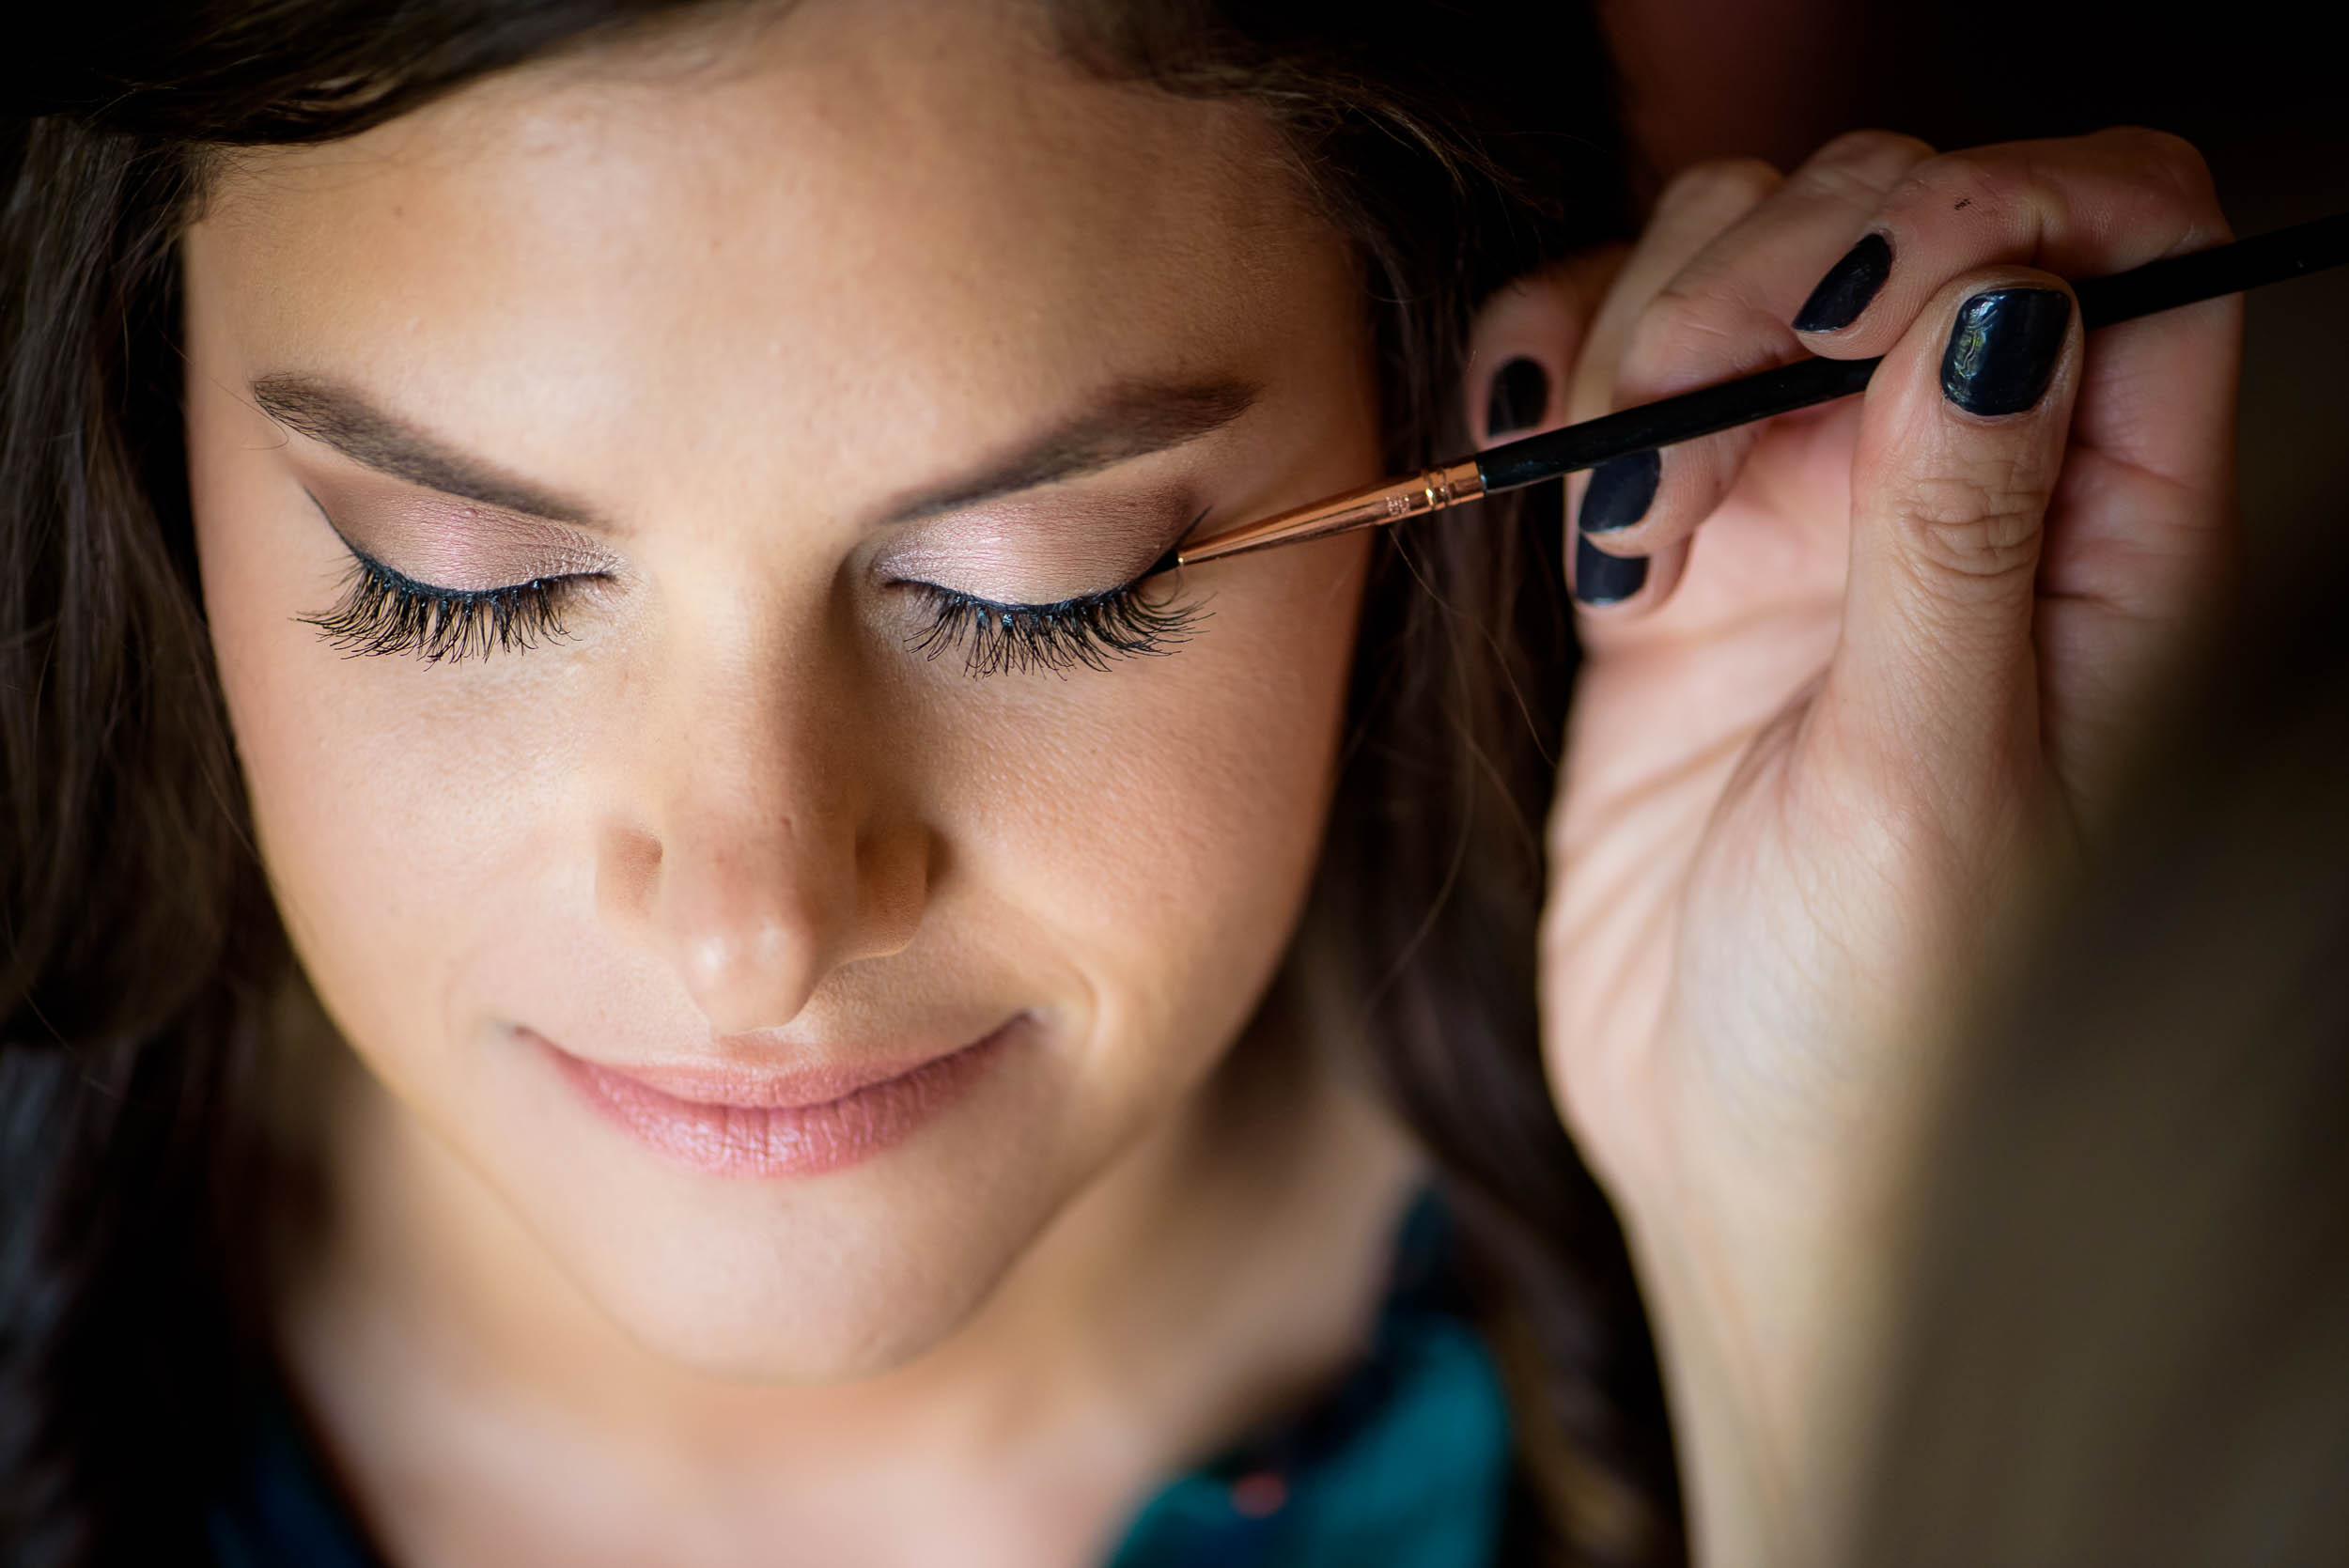 Bride getting wedding makeup done for Grand Geneve Resort Fall Chicago Wedding captured by J. Brown Photography. Visit jbrownphotography.com for more wedding inspiration!